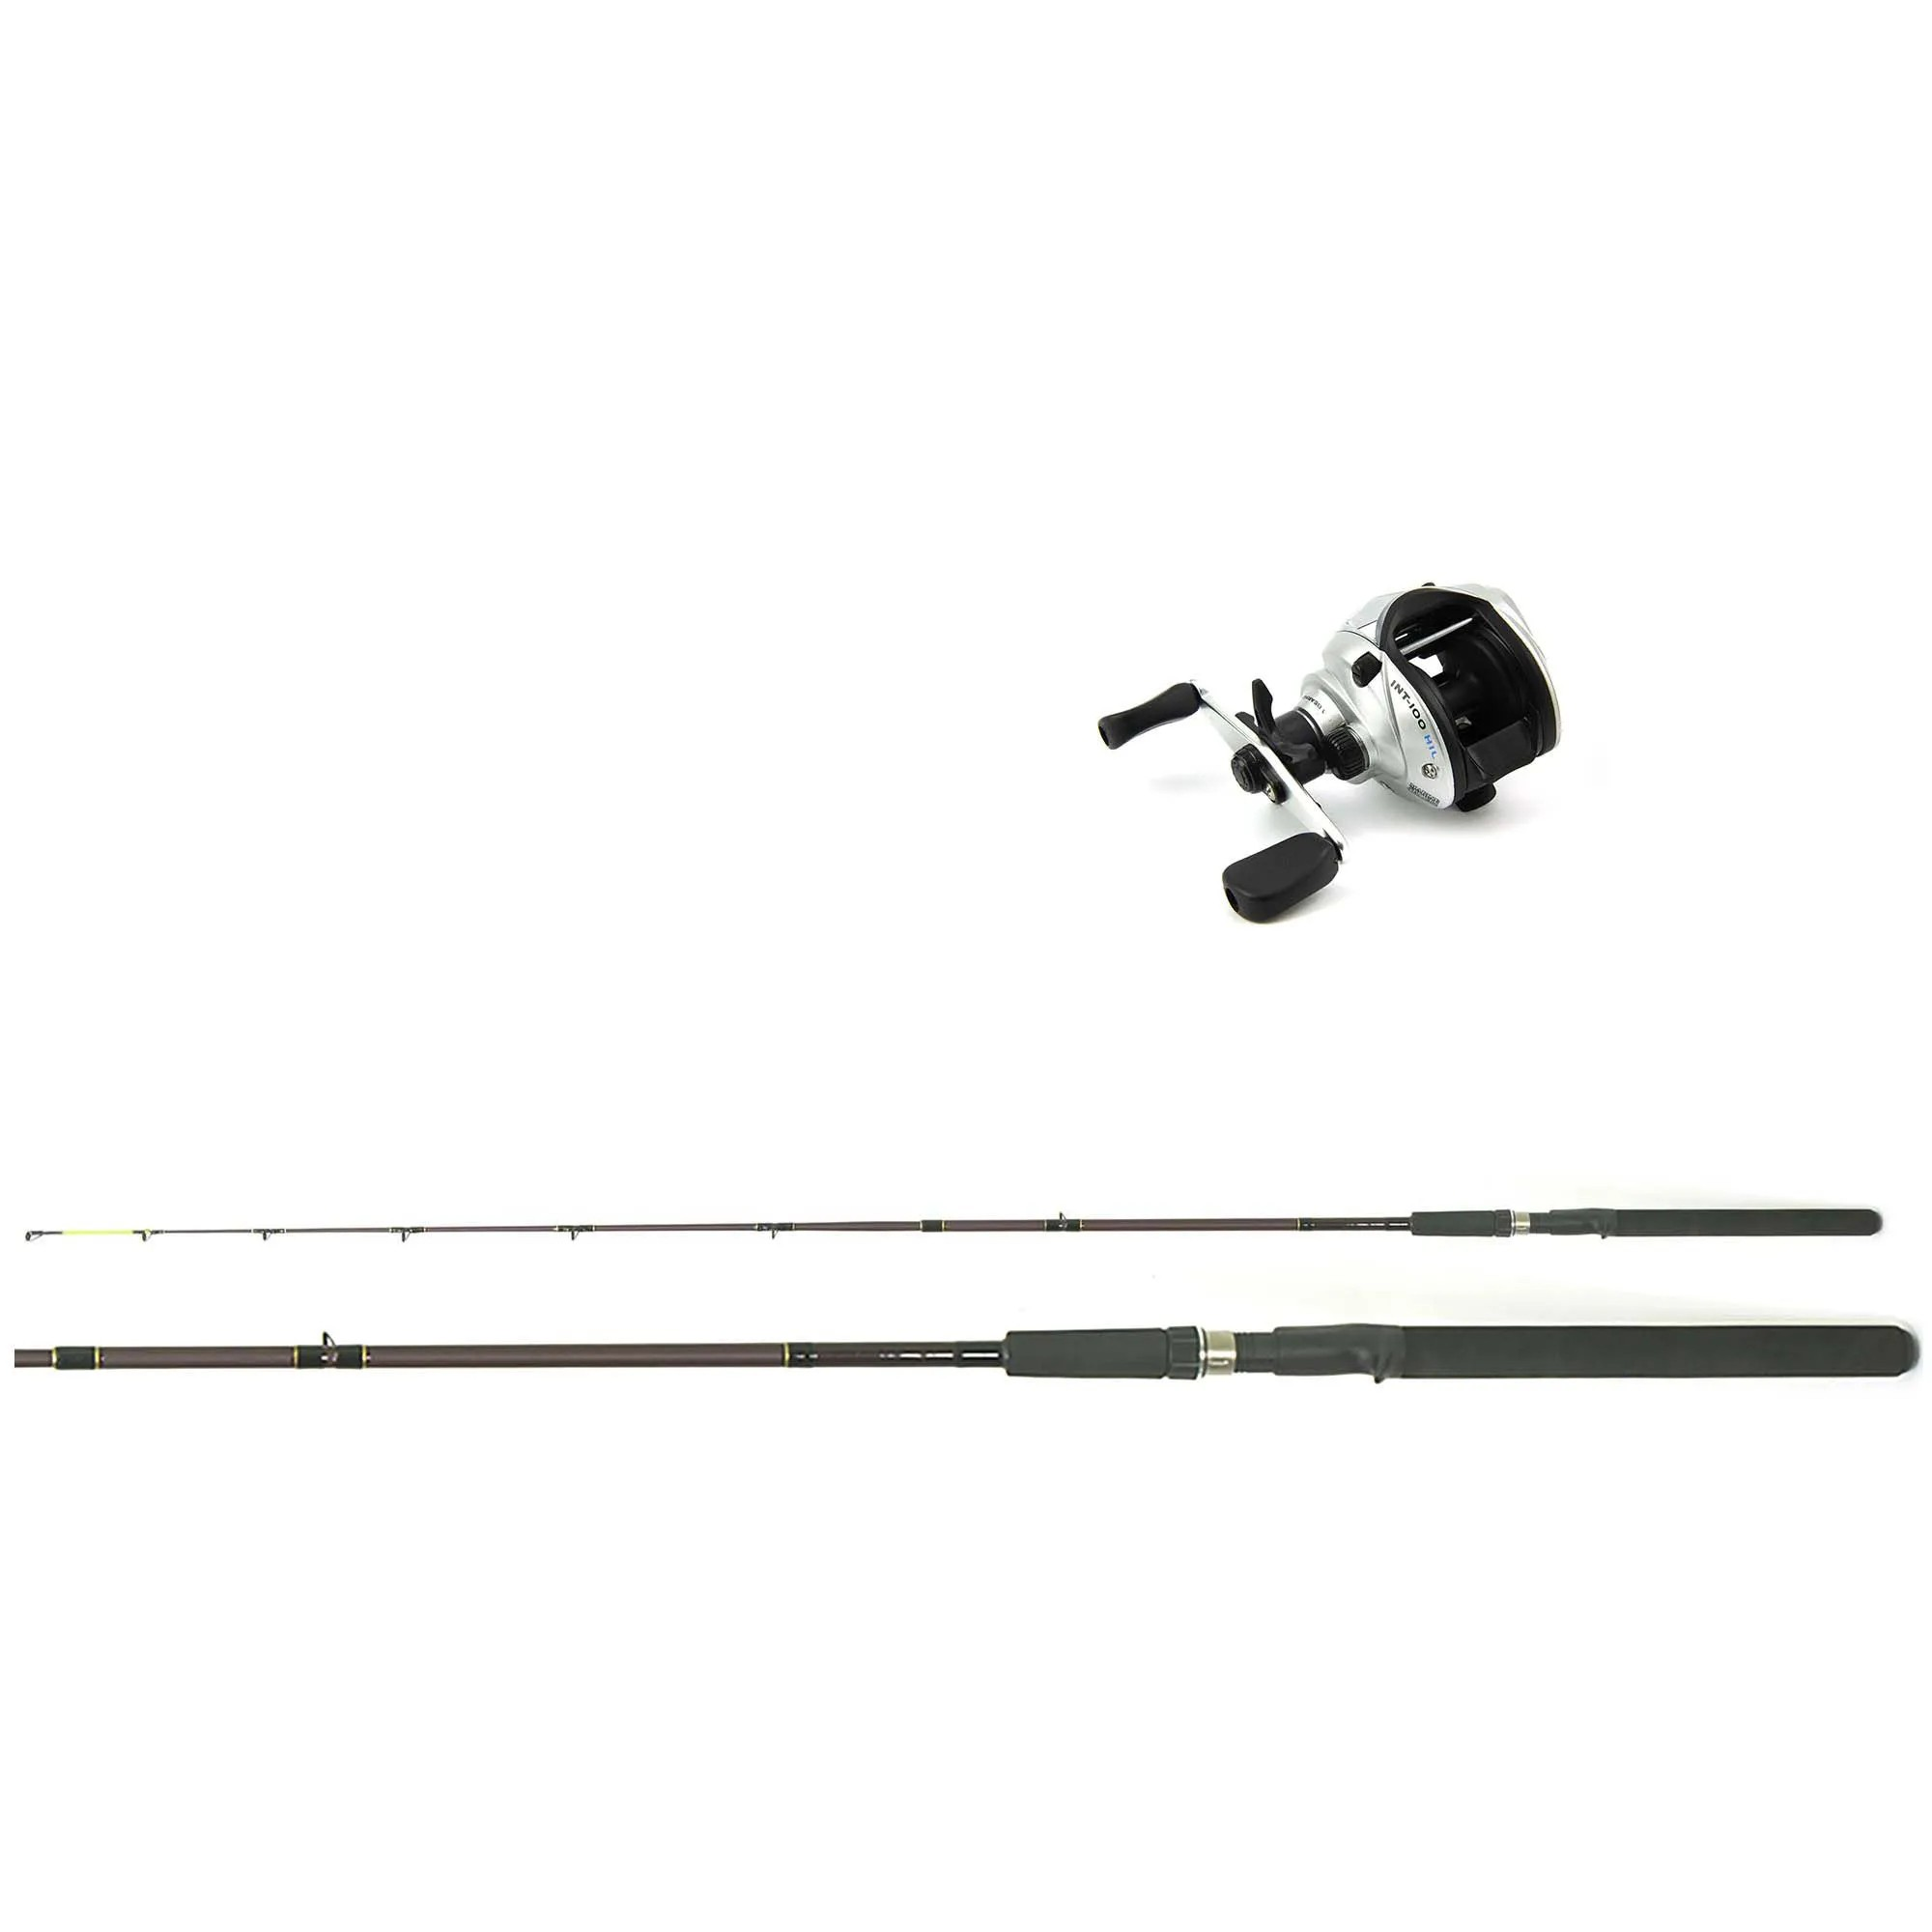 Kit Pesca Carretilha Intruder 100 + Vara Dura Power 1,65m  - Artpesca